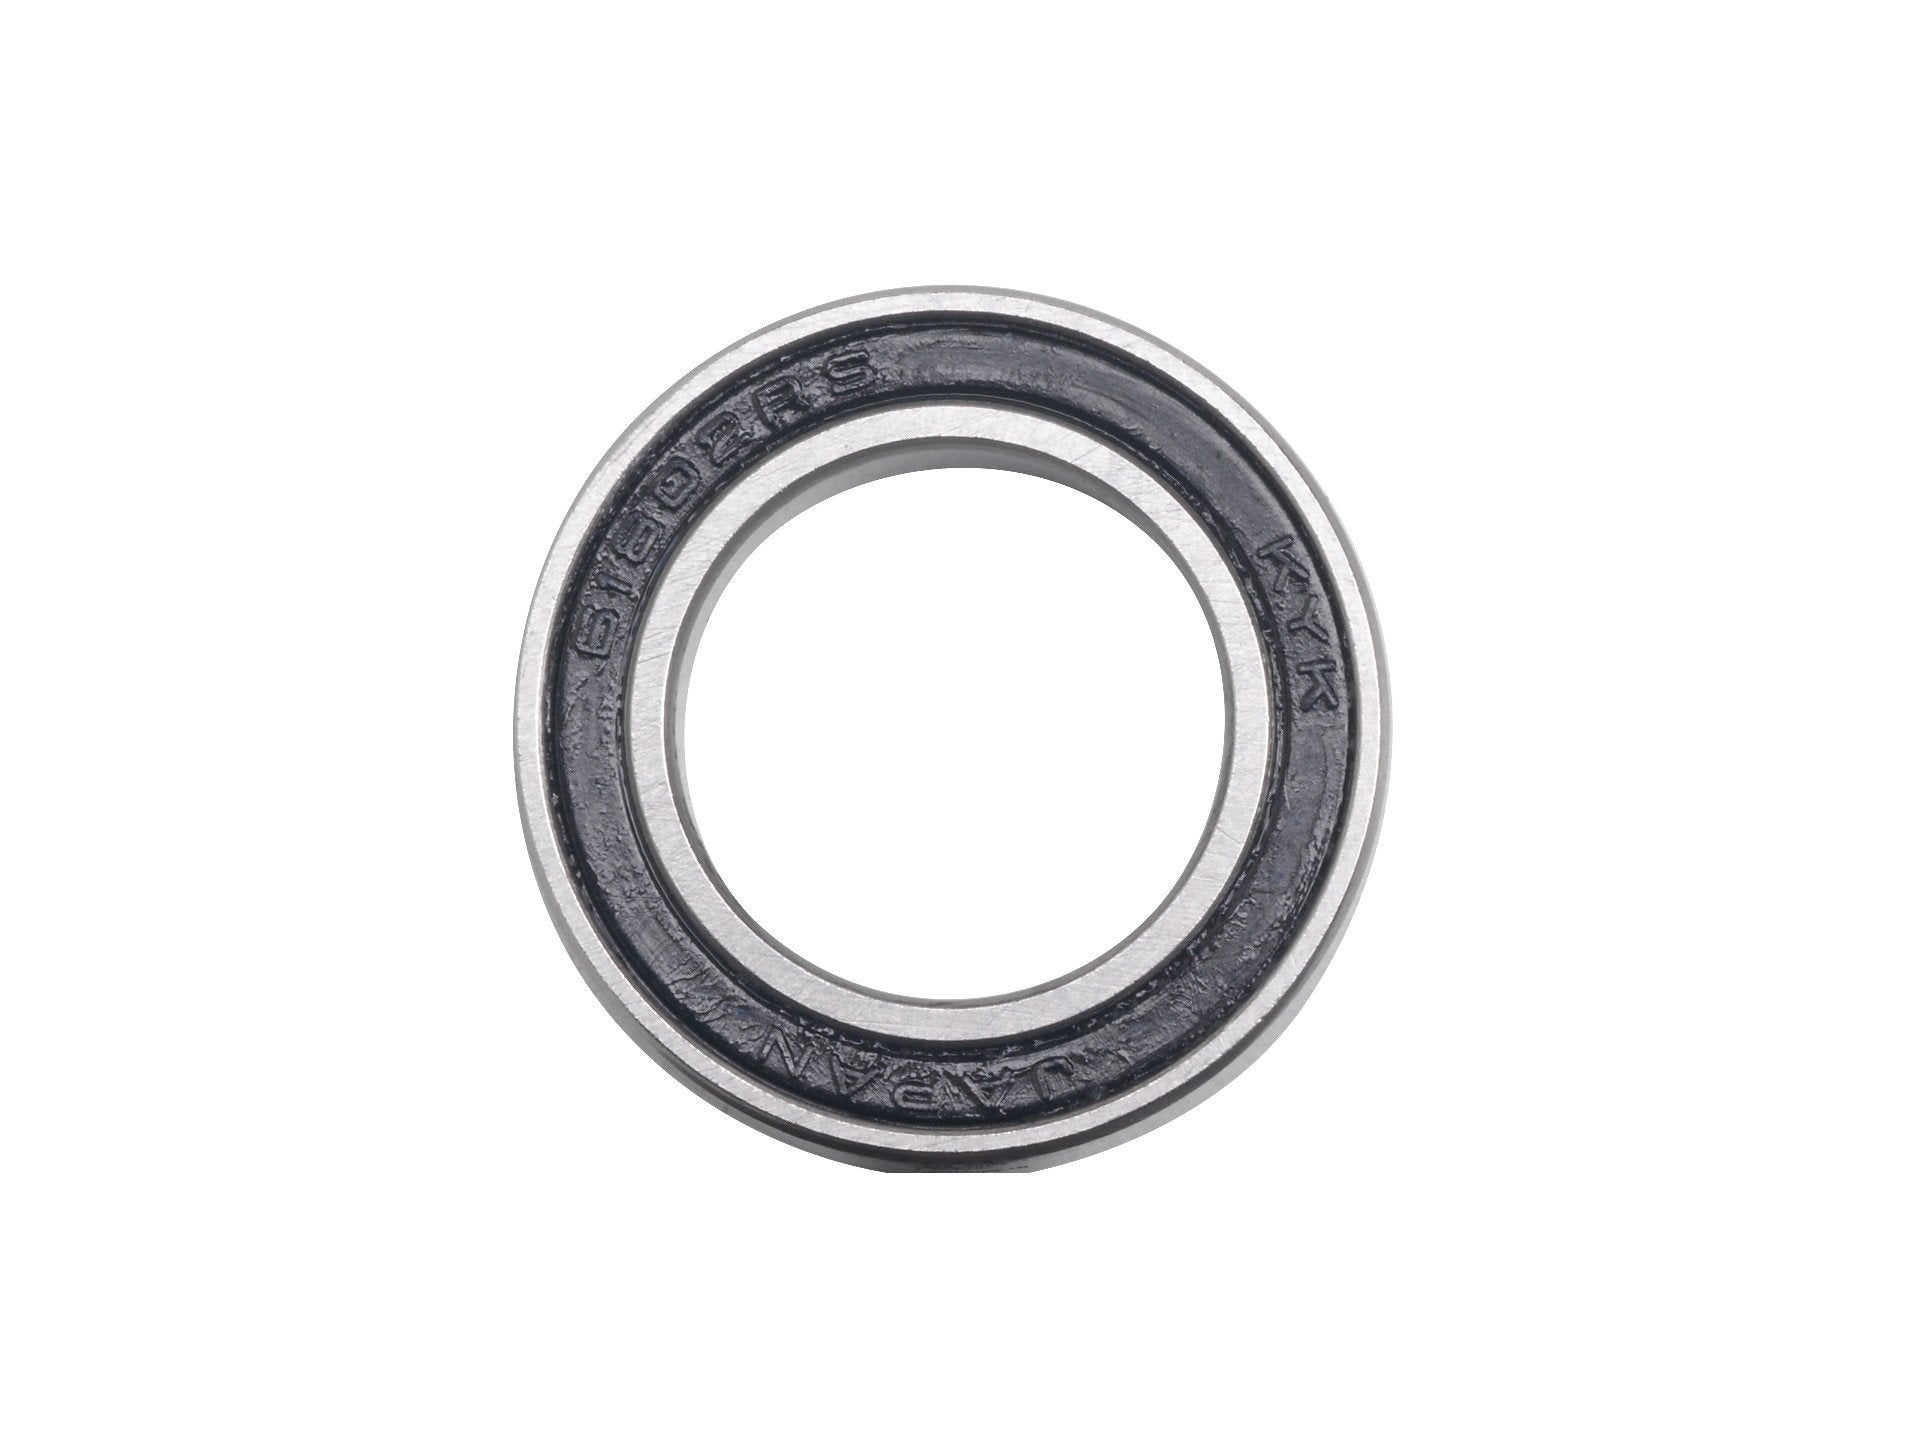 Bontrager 6802 LLB Replacement Hub Bearing 15X24X5 - Cycles Galleria Melbourne